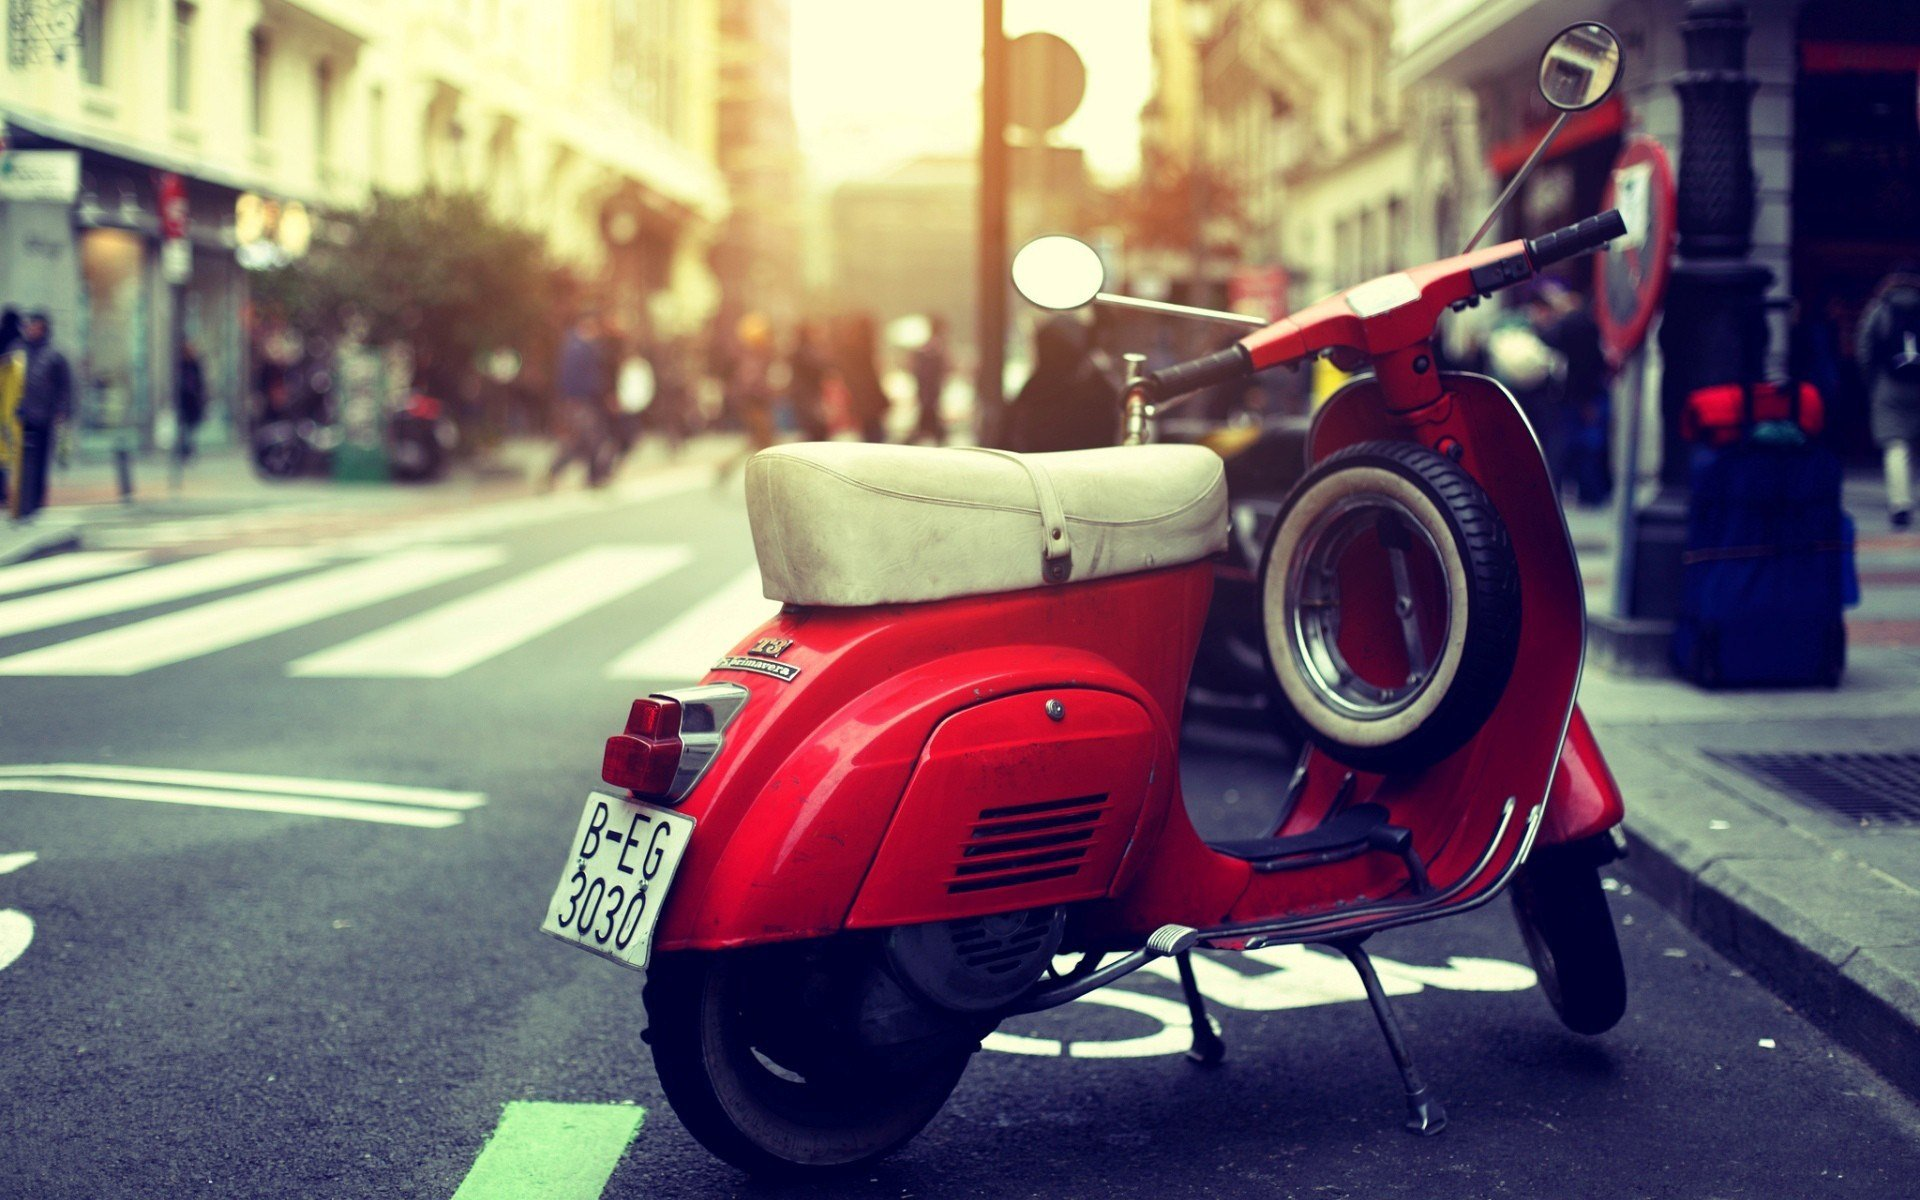 vespa scooter red street photo 1920x1200